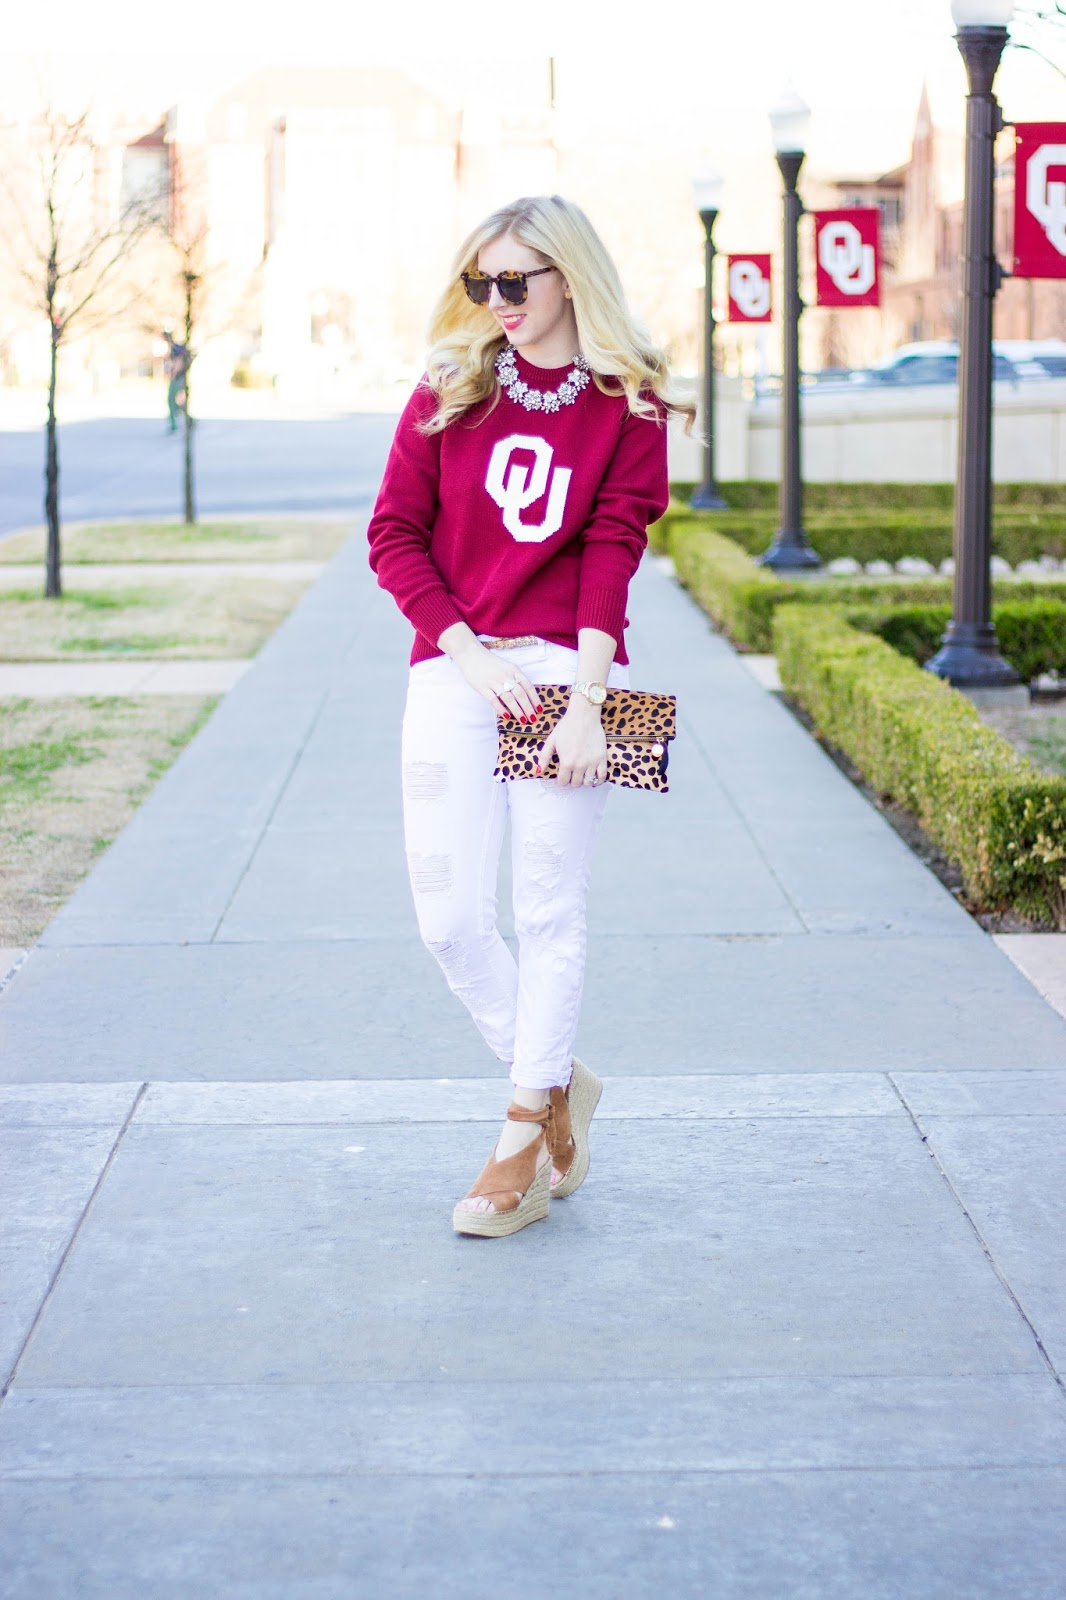 OU Clothing for Spring by Washington DC fashion blogger Styled Blonde